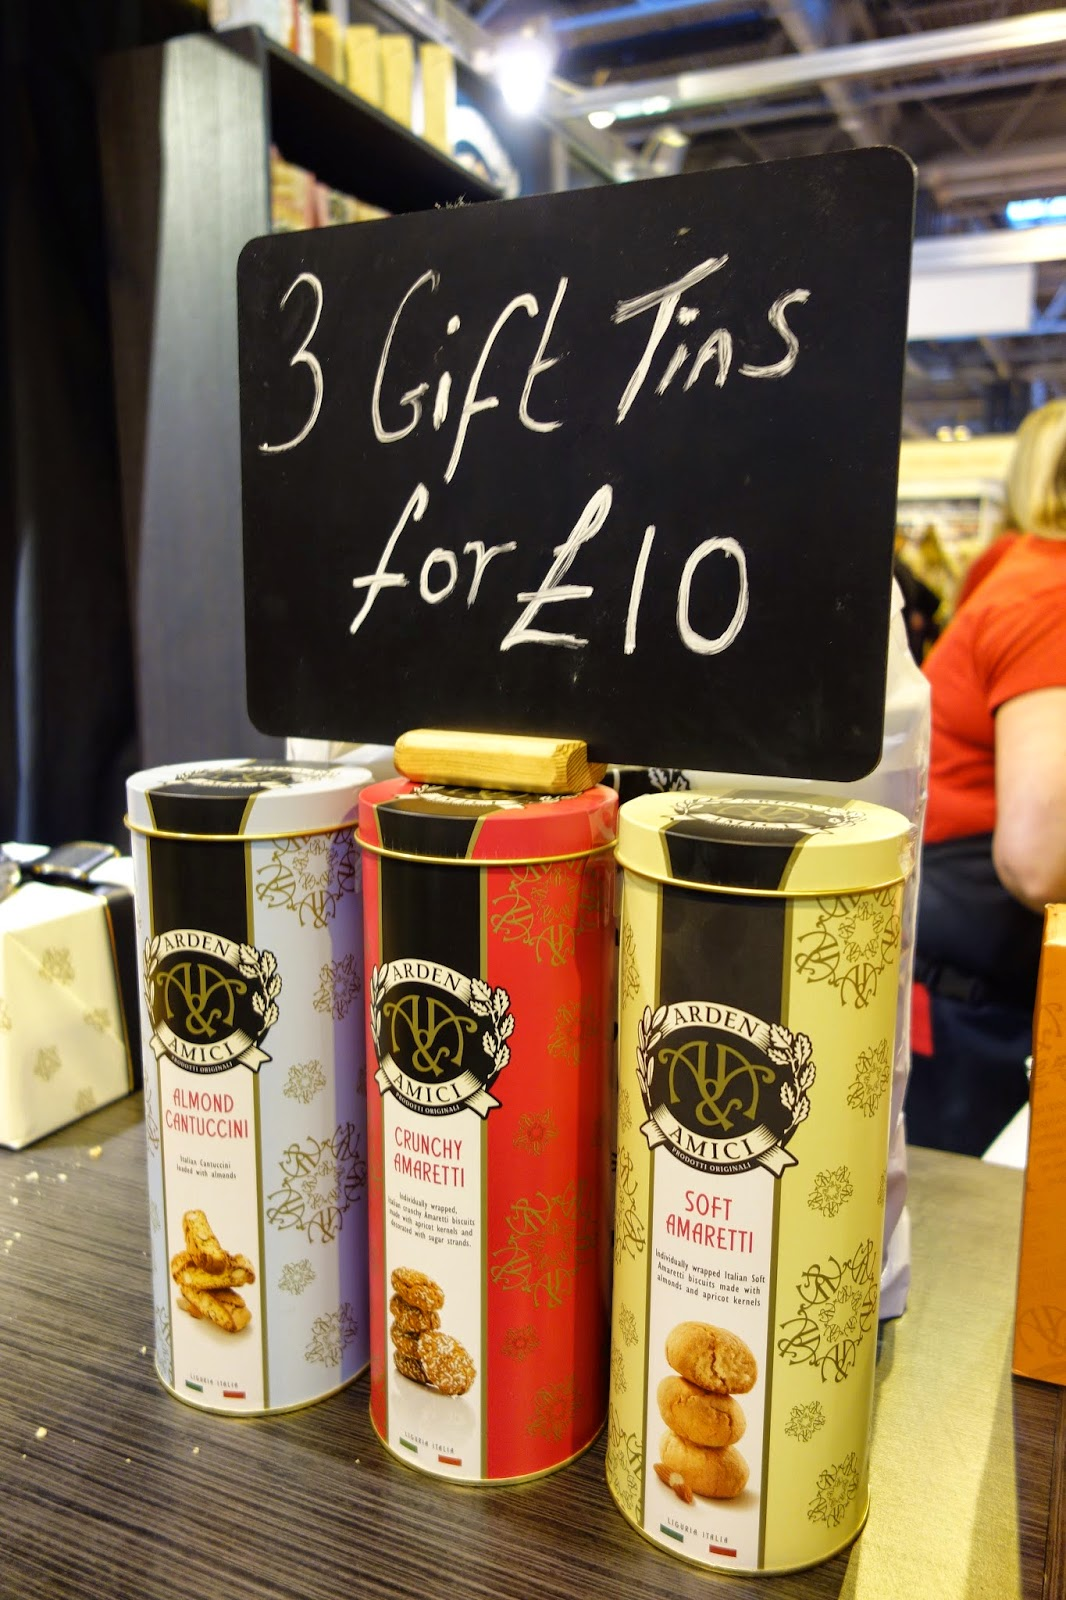 3 for £10 tins of Amaretti - gift ideas on display